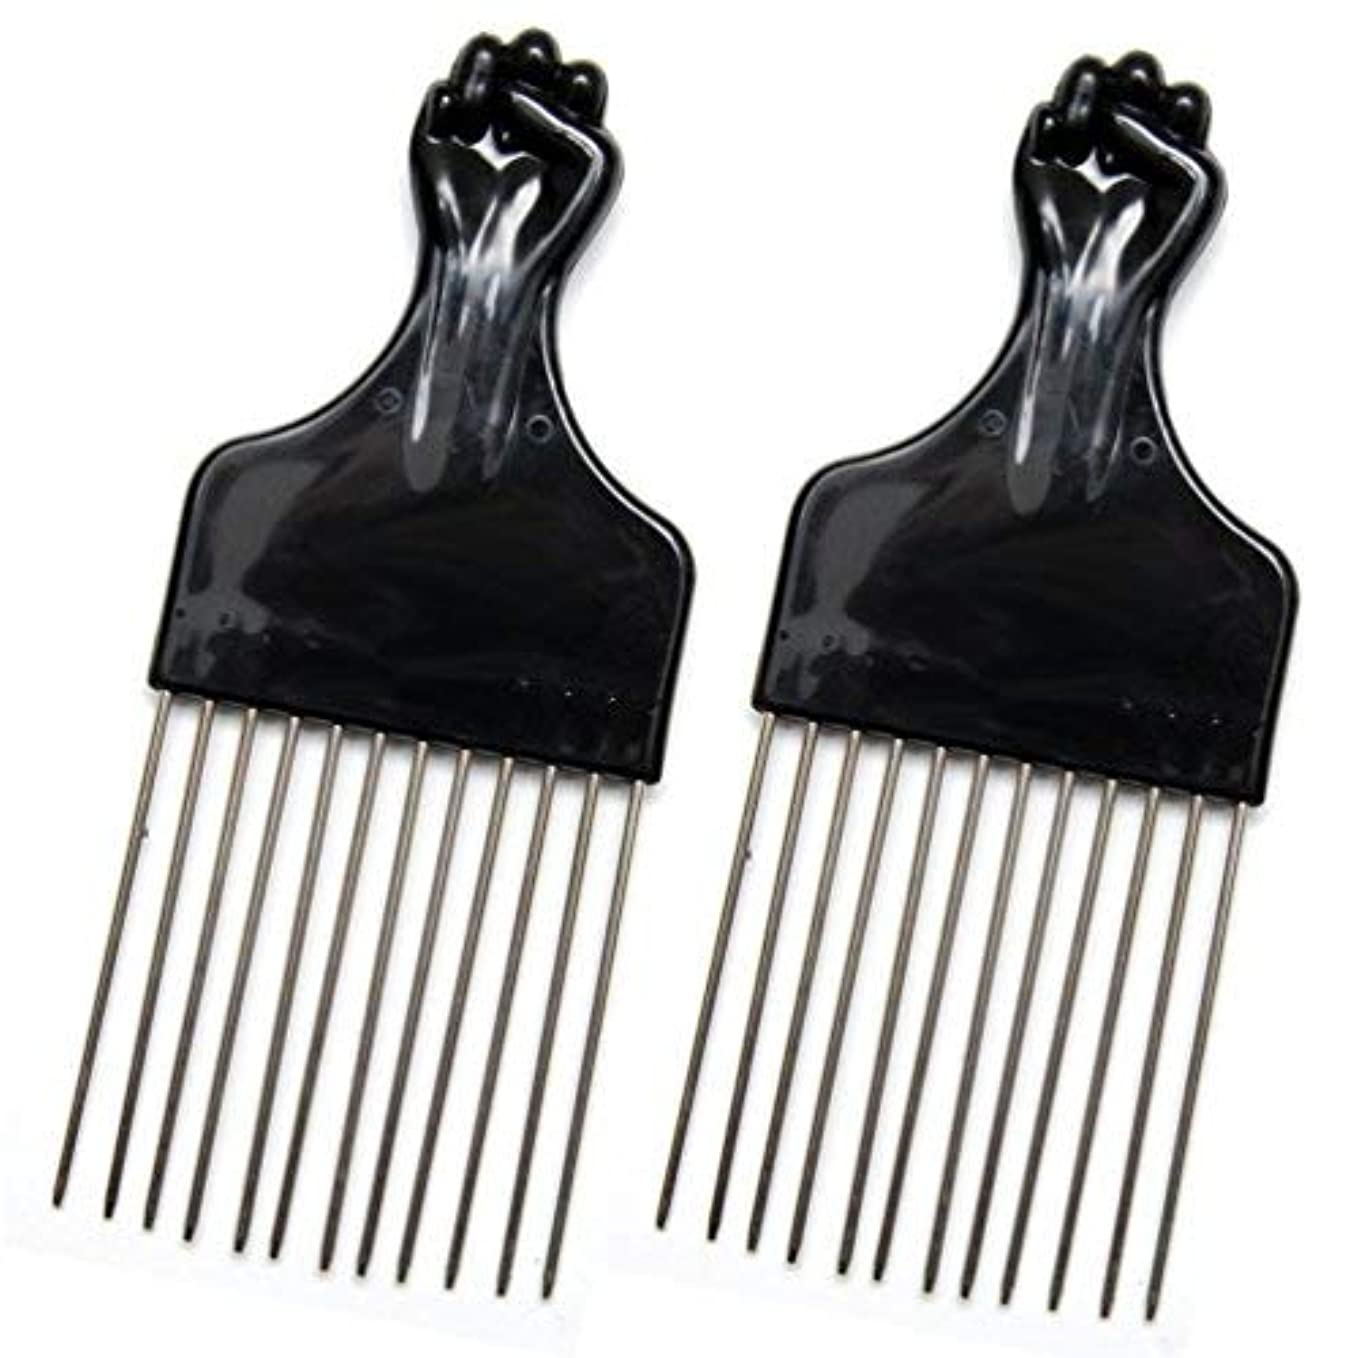 Luxxii (2 Pack) 6.75